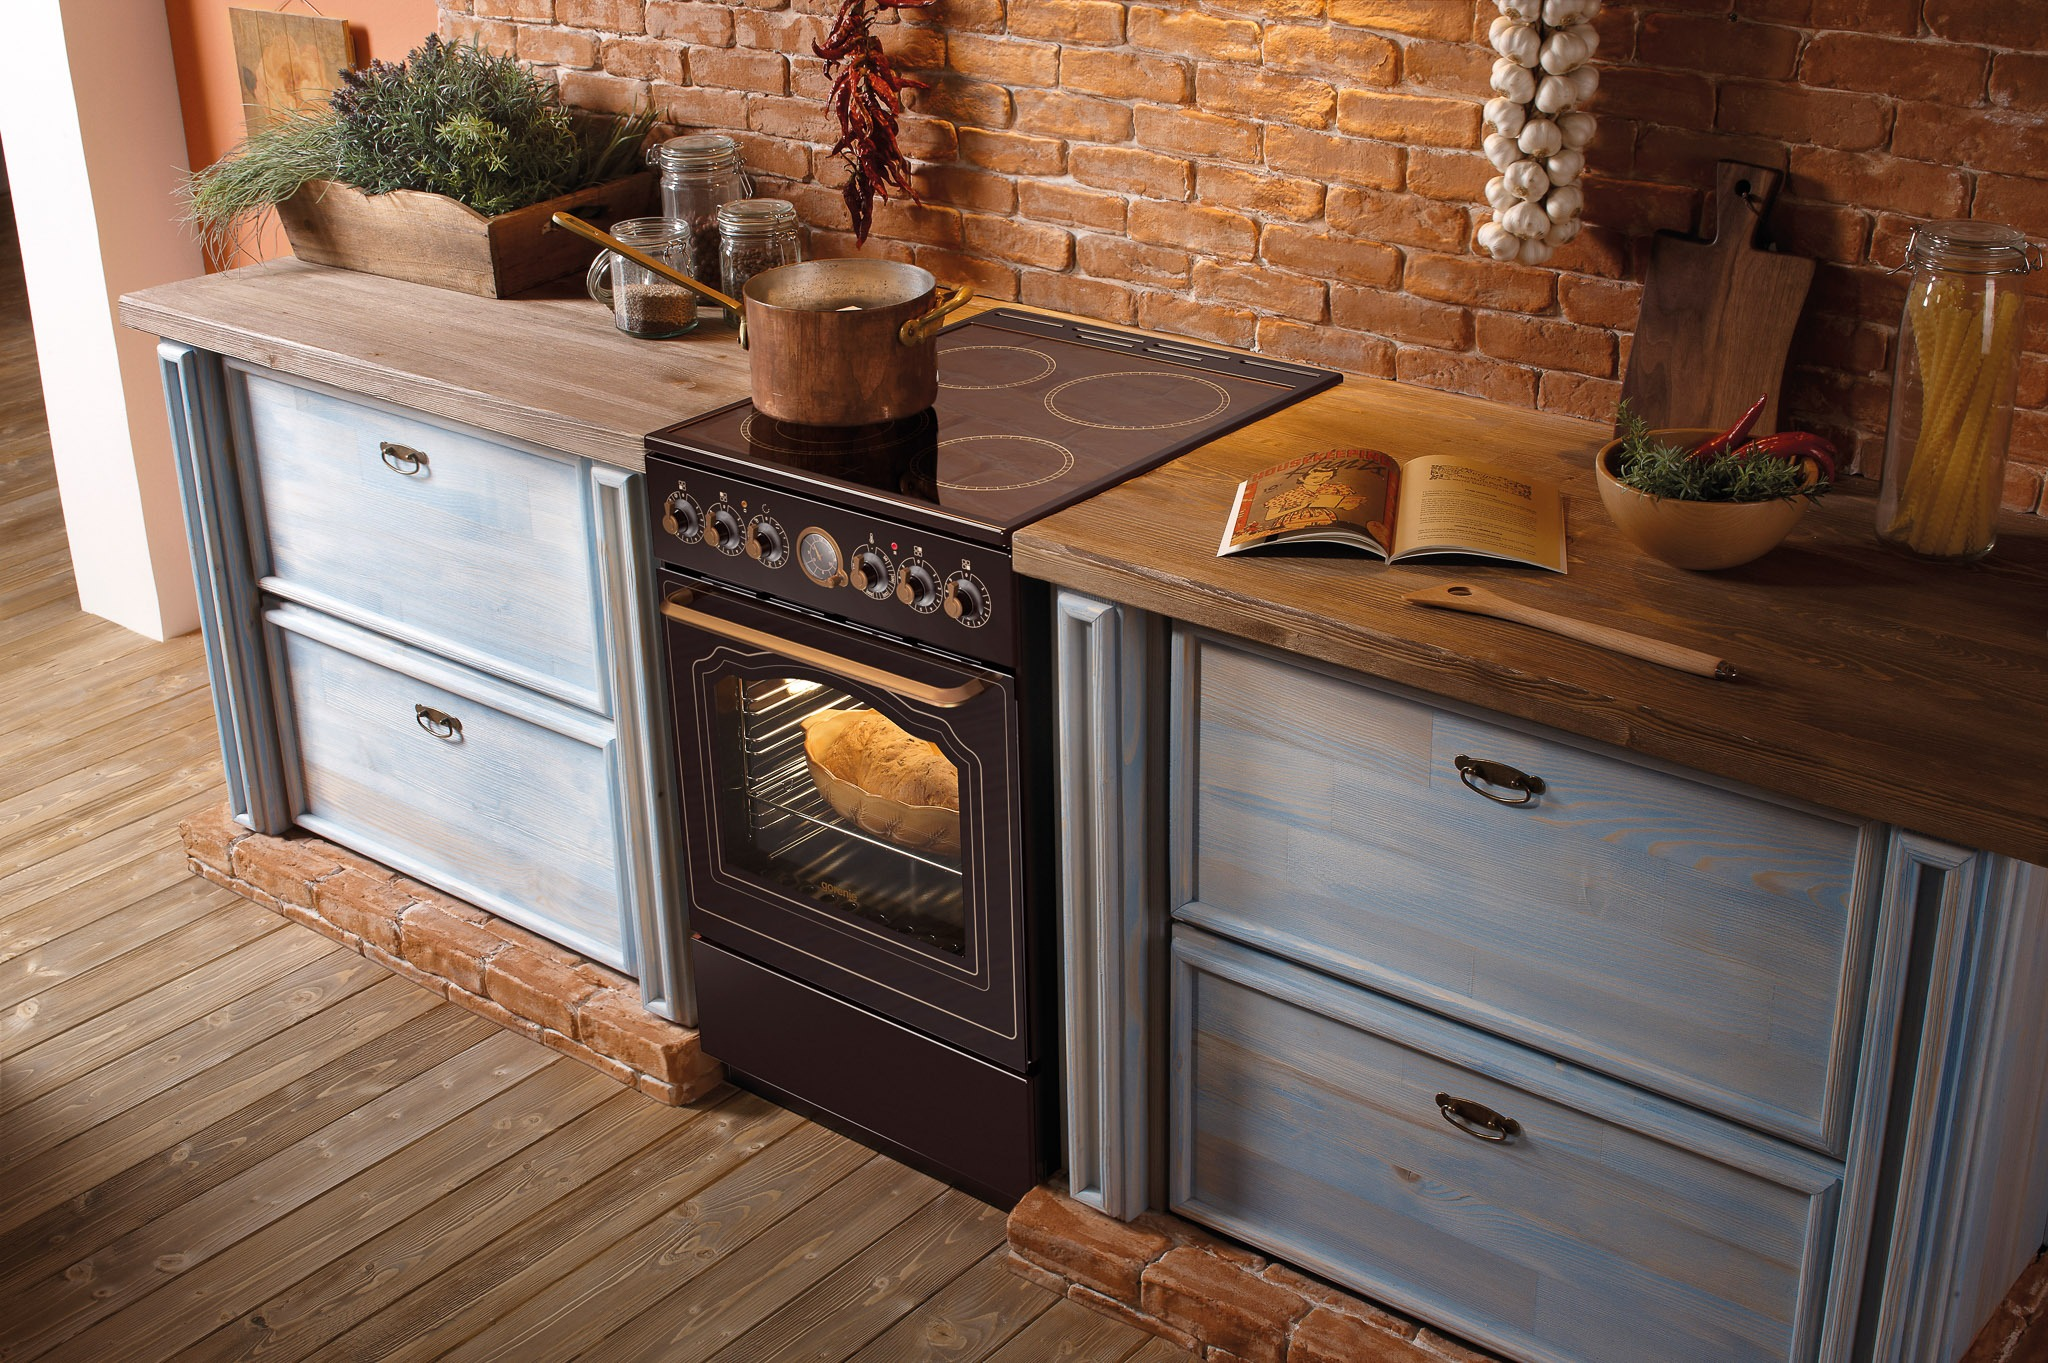 126178_file_print_Classico_Ambient_COOKER_CLB_50